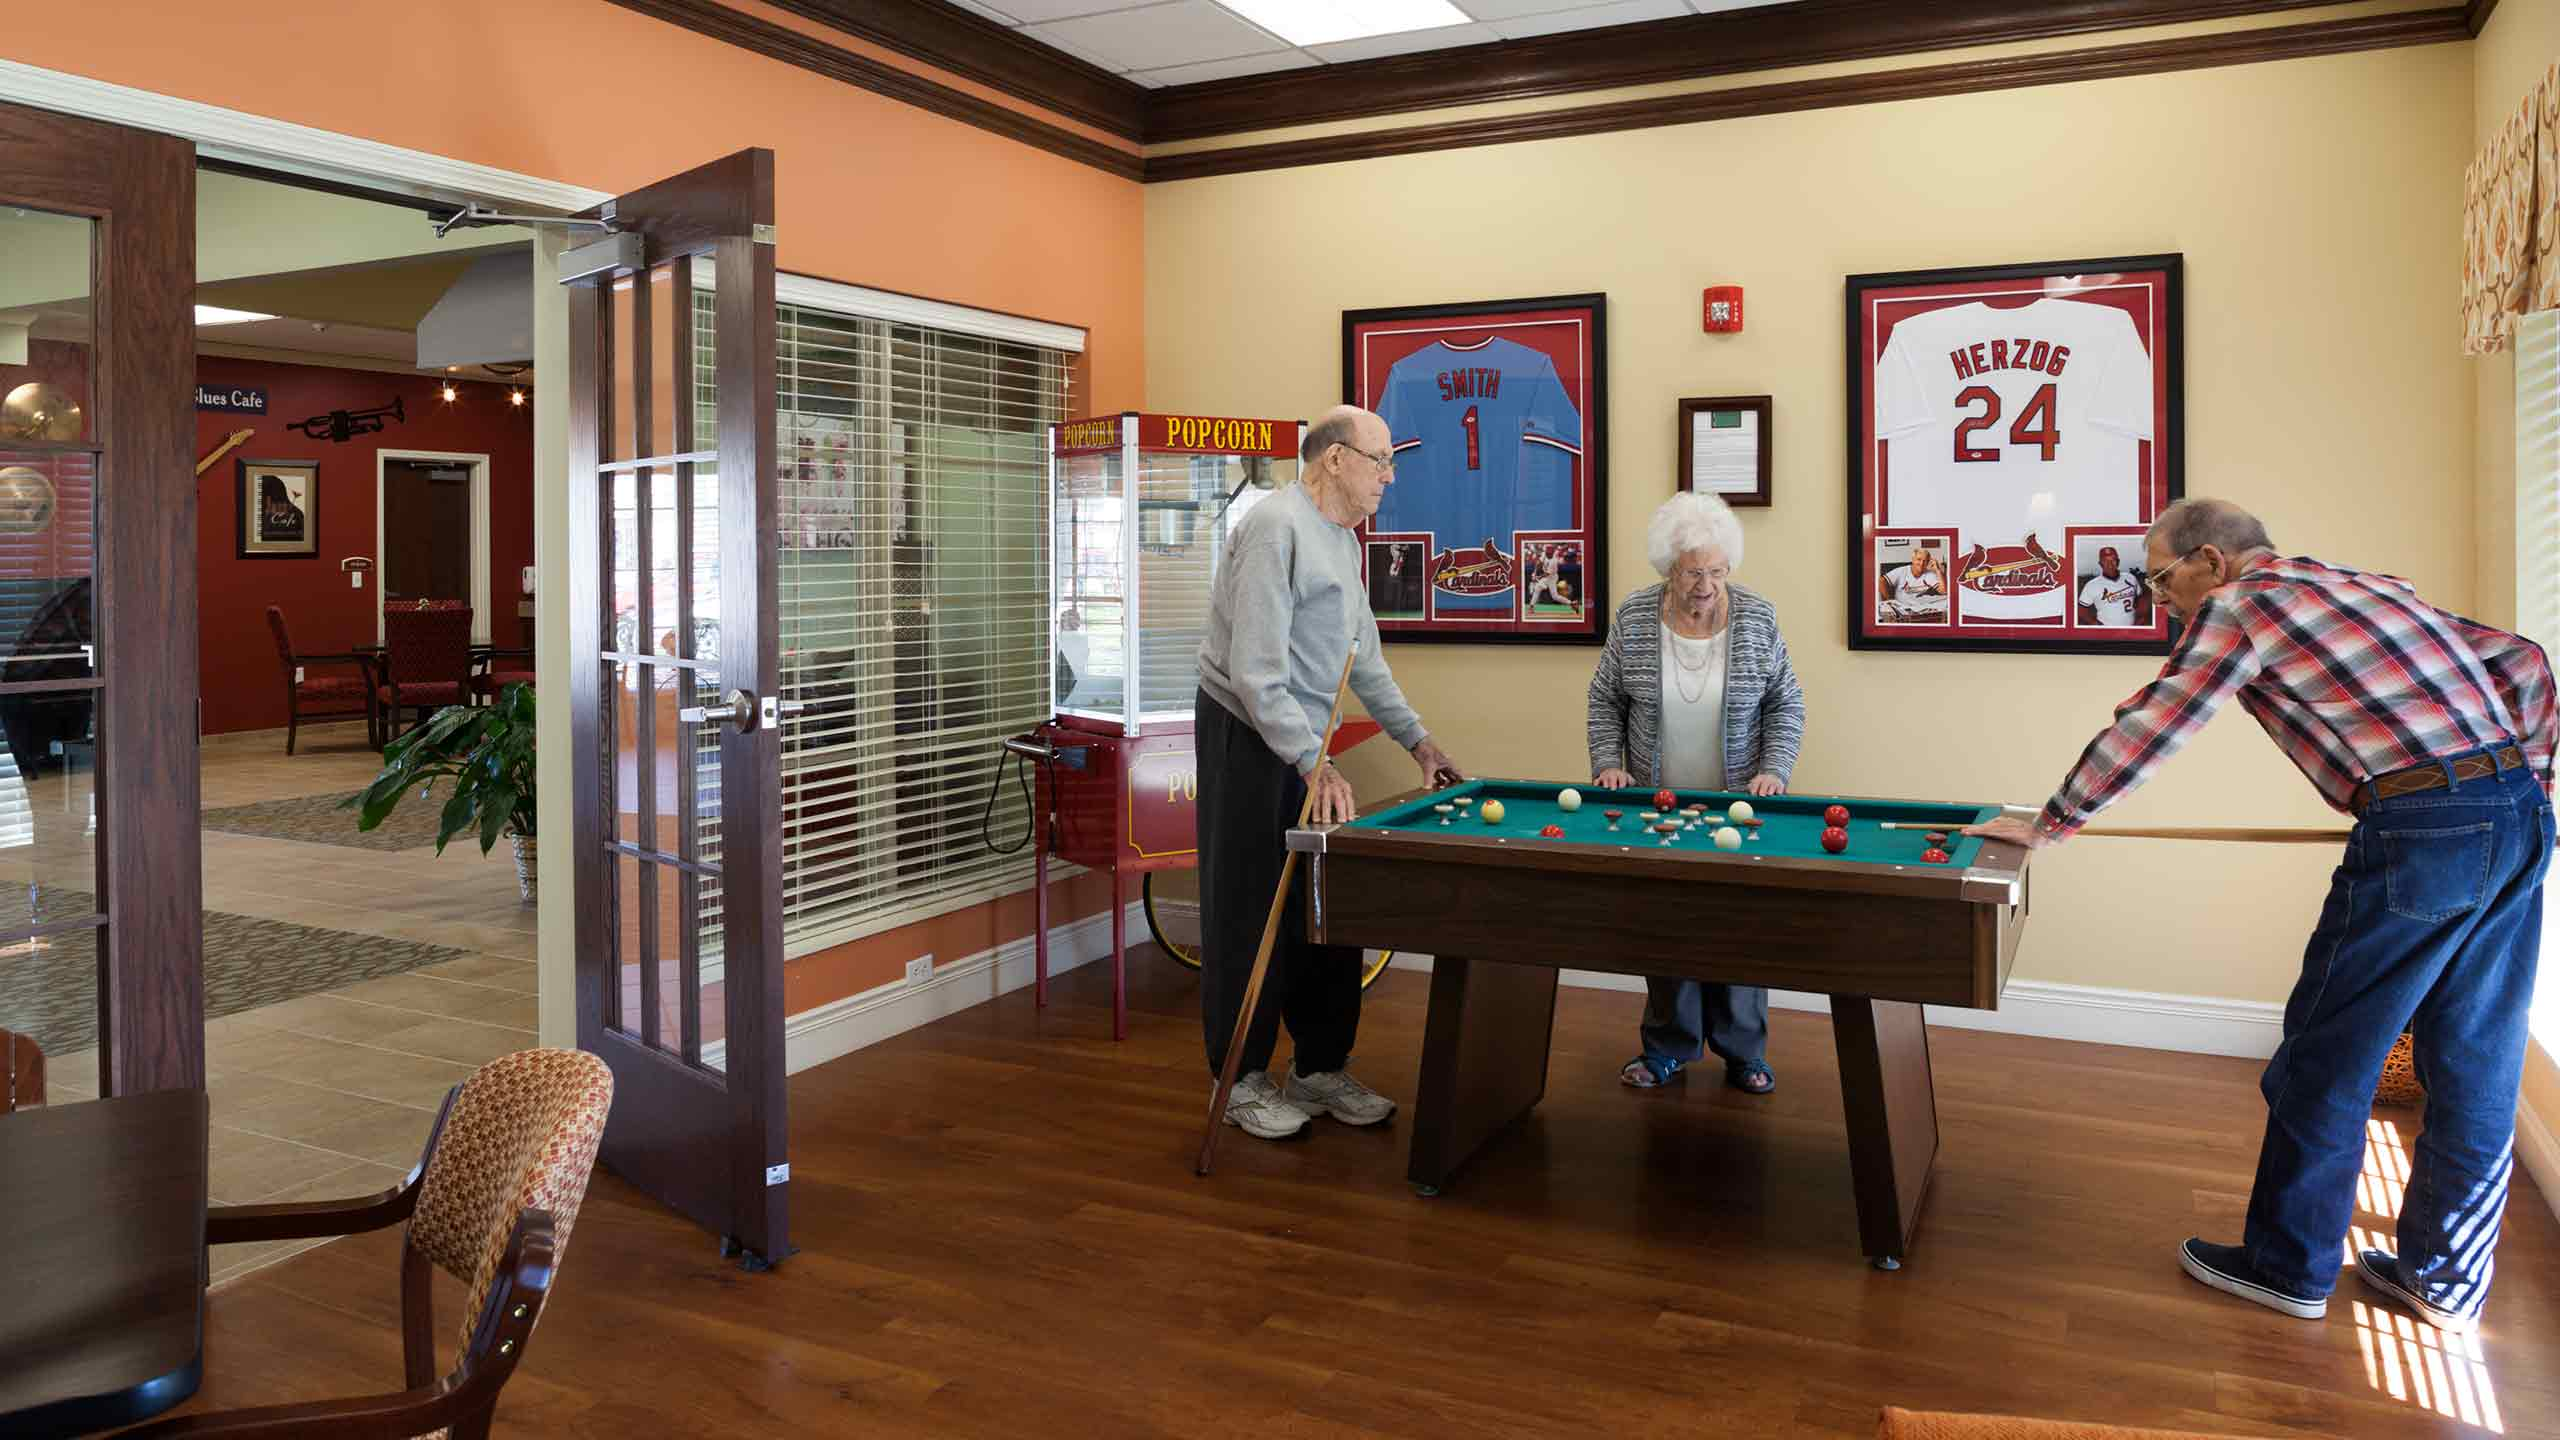 Villages-of-st-peters-game-room